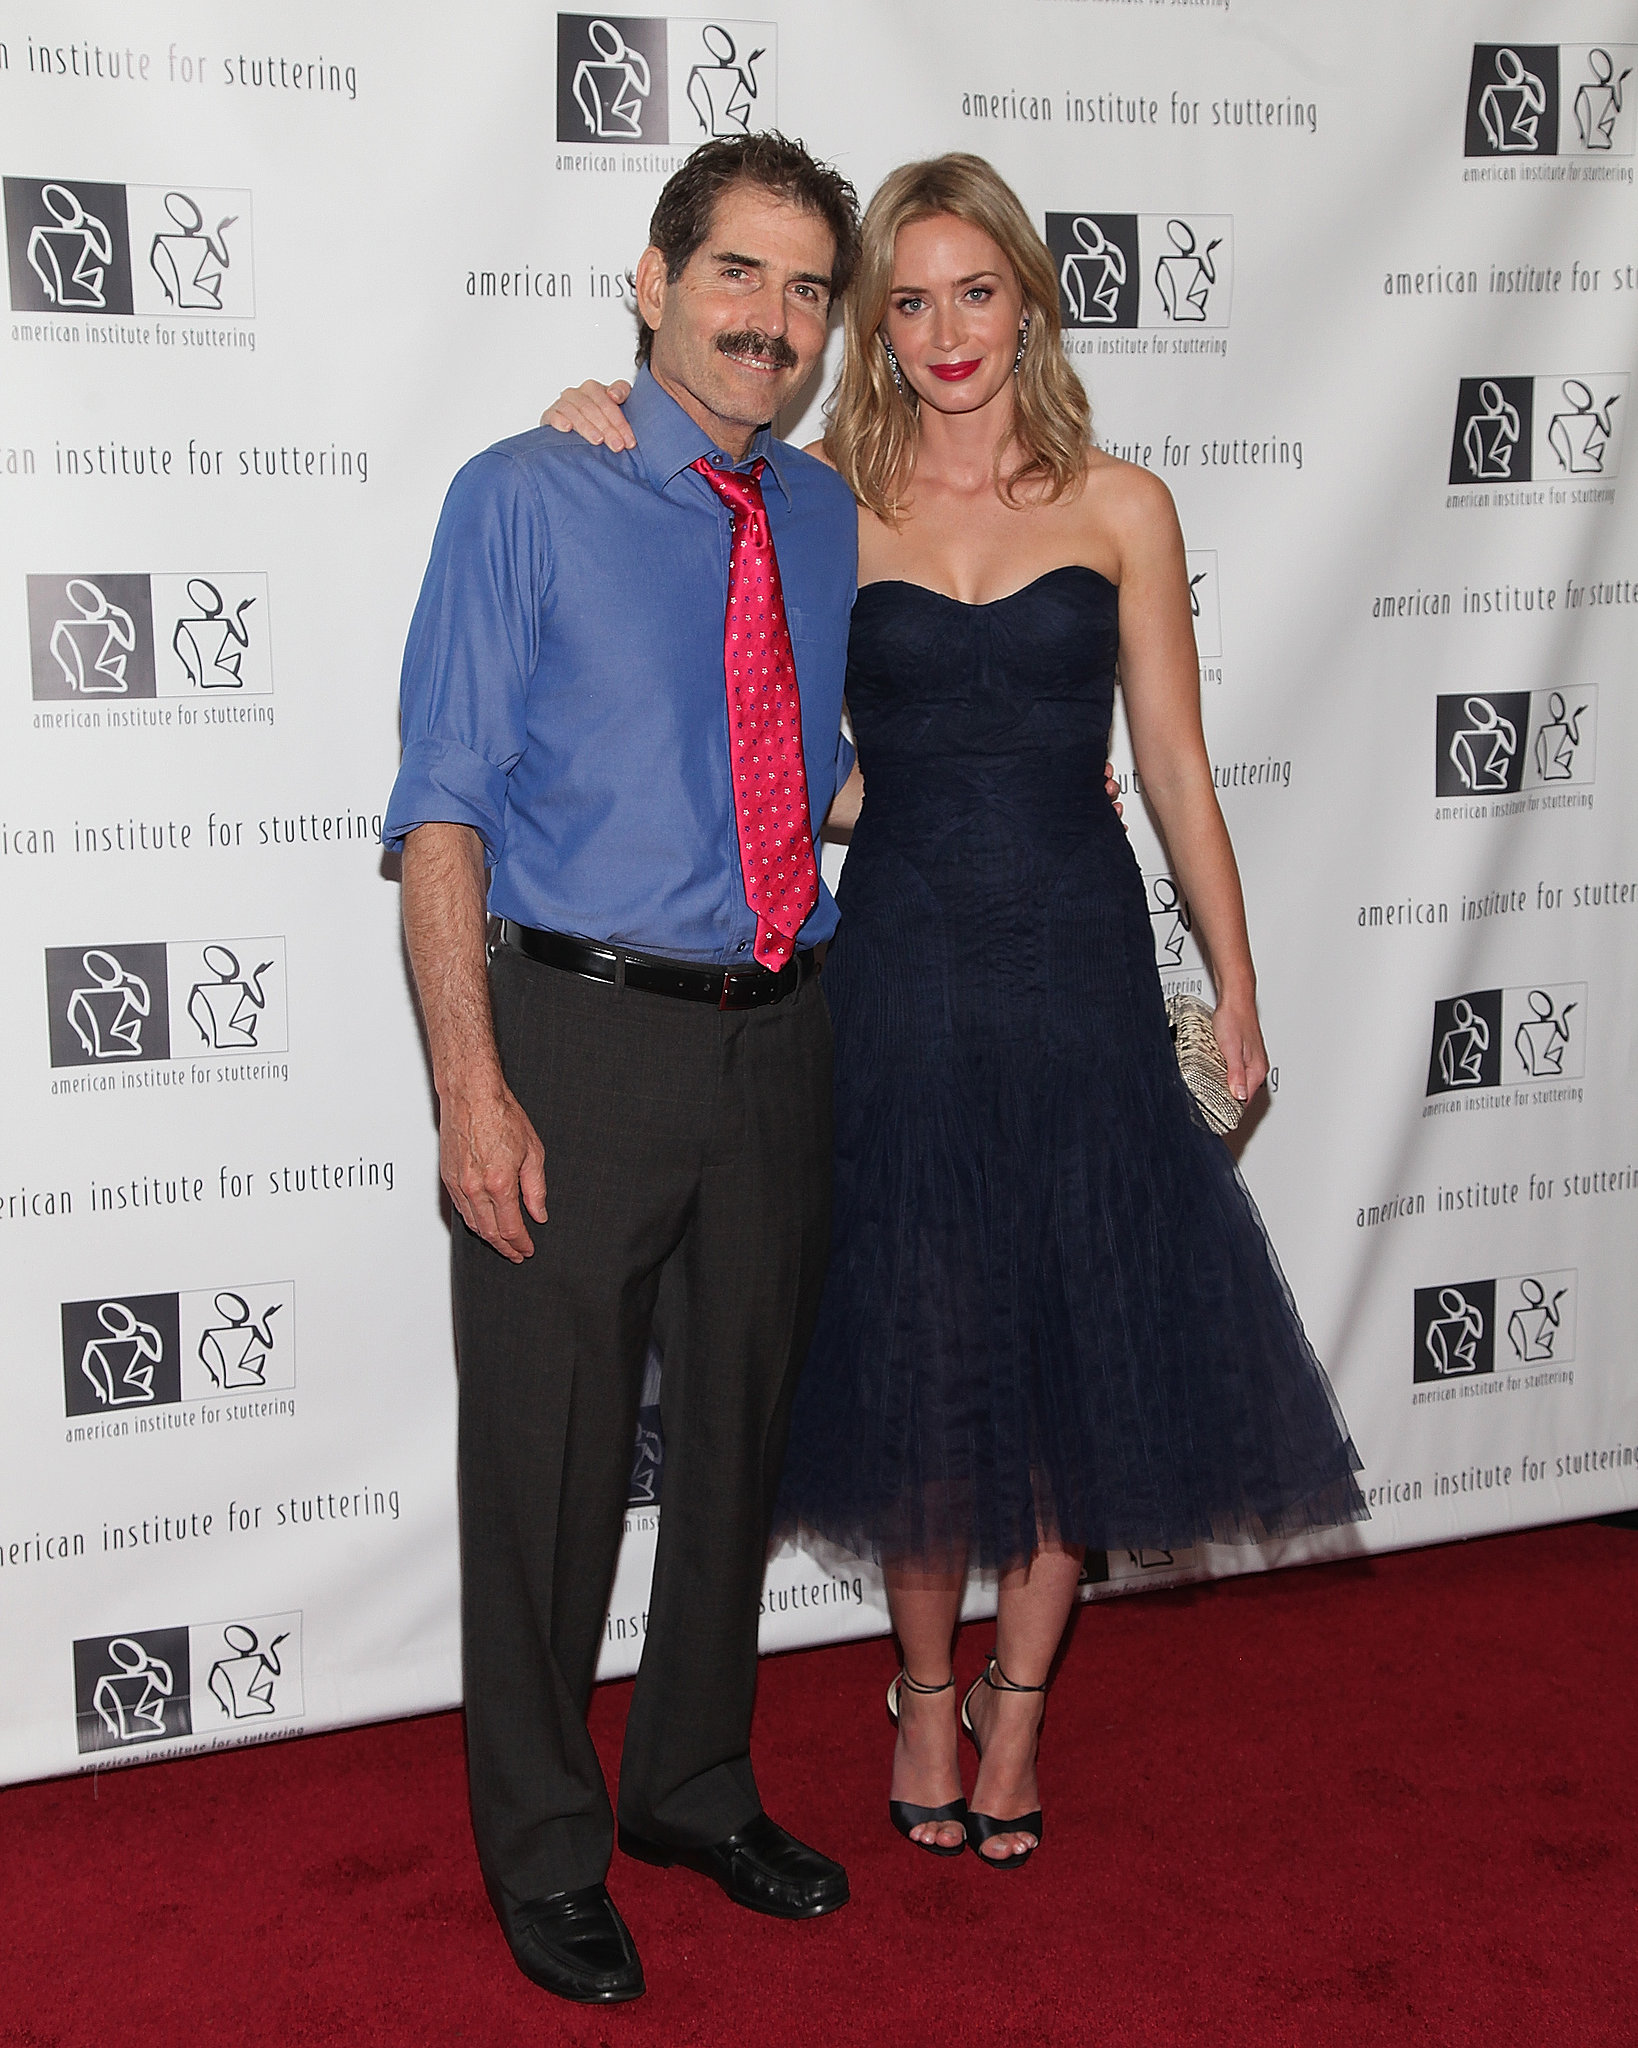 The one thing I've learned is that stutt by John Stossel ... Emily Blunt